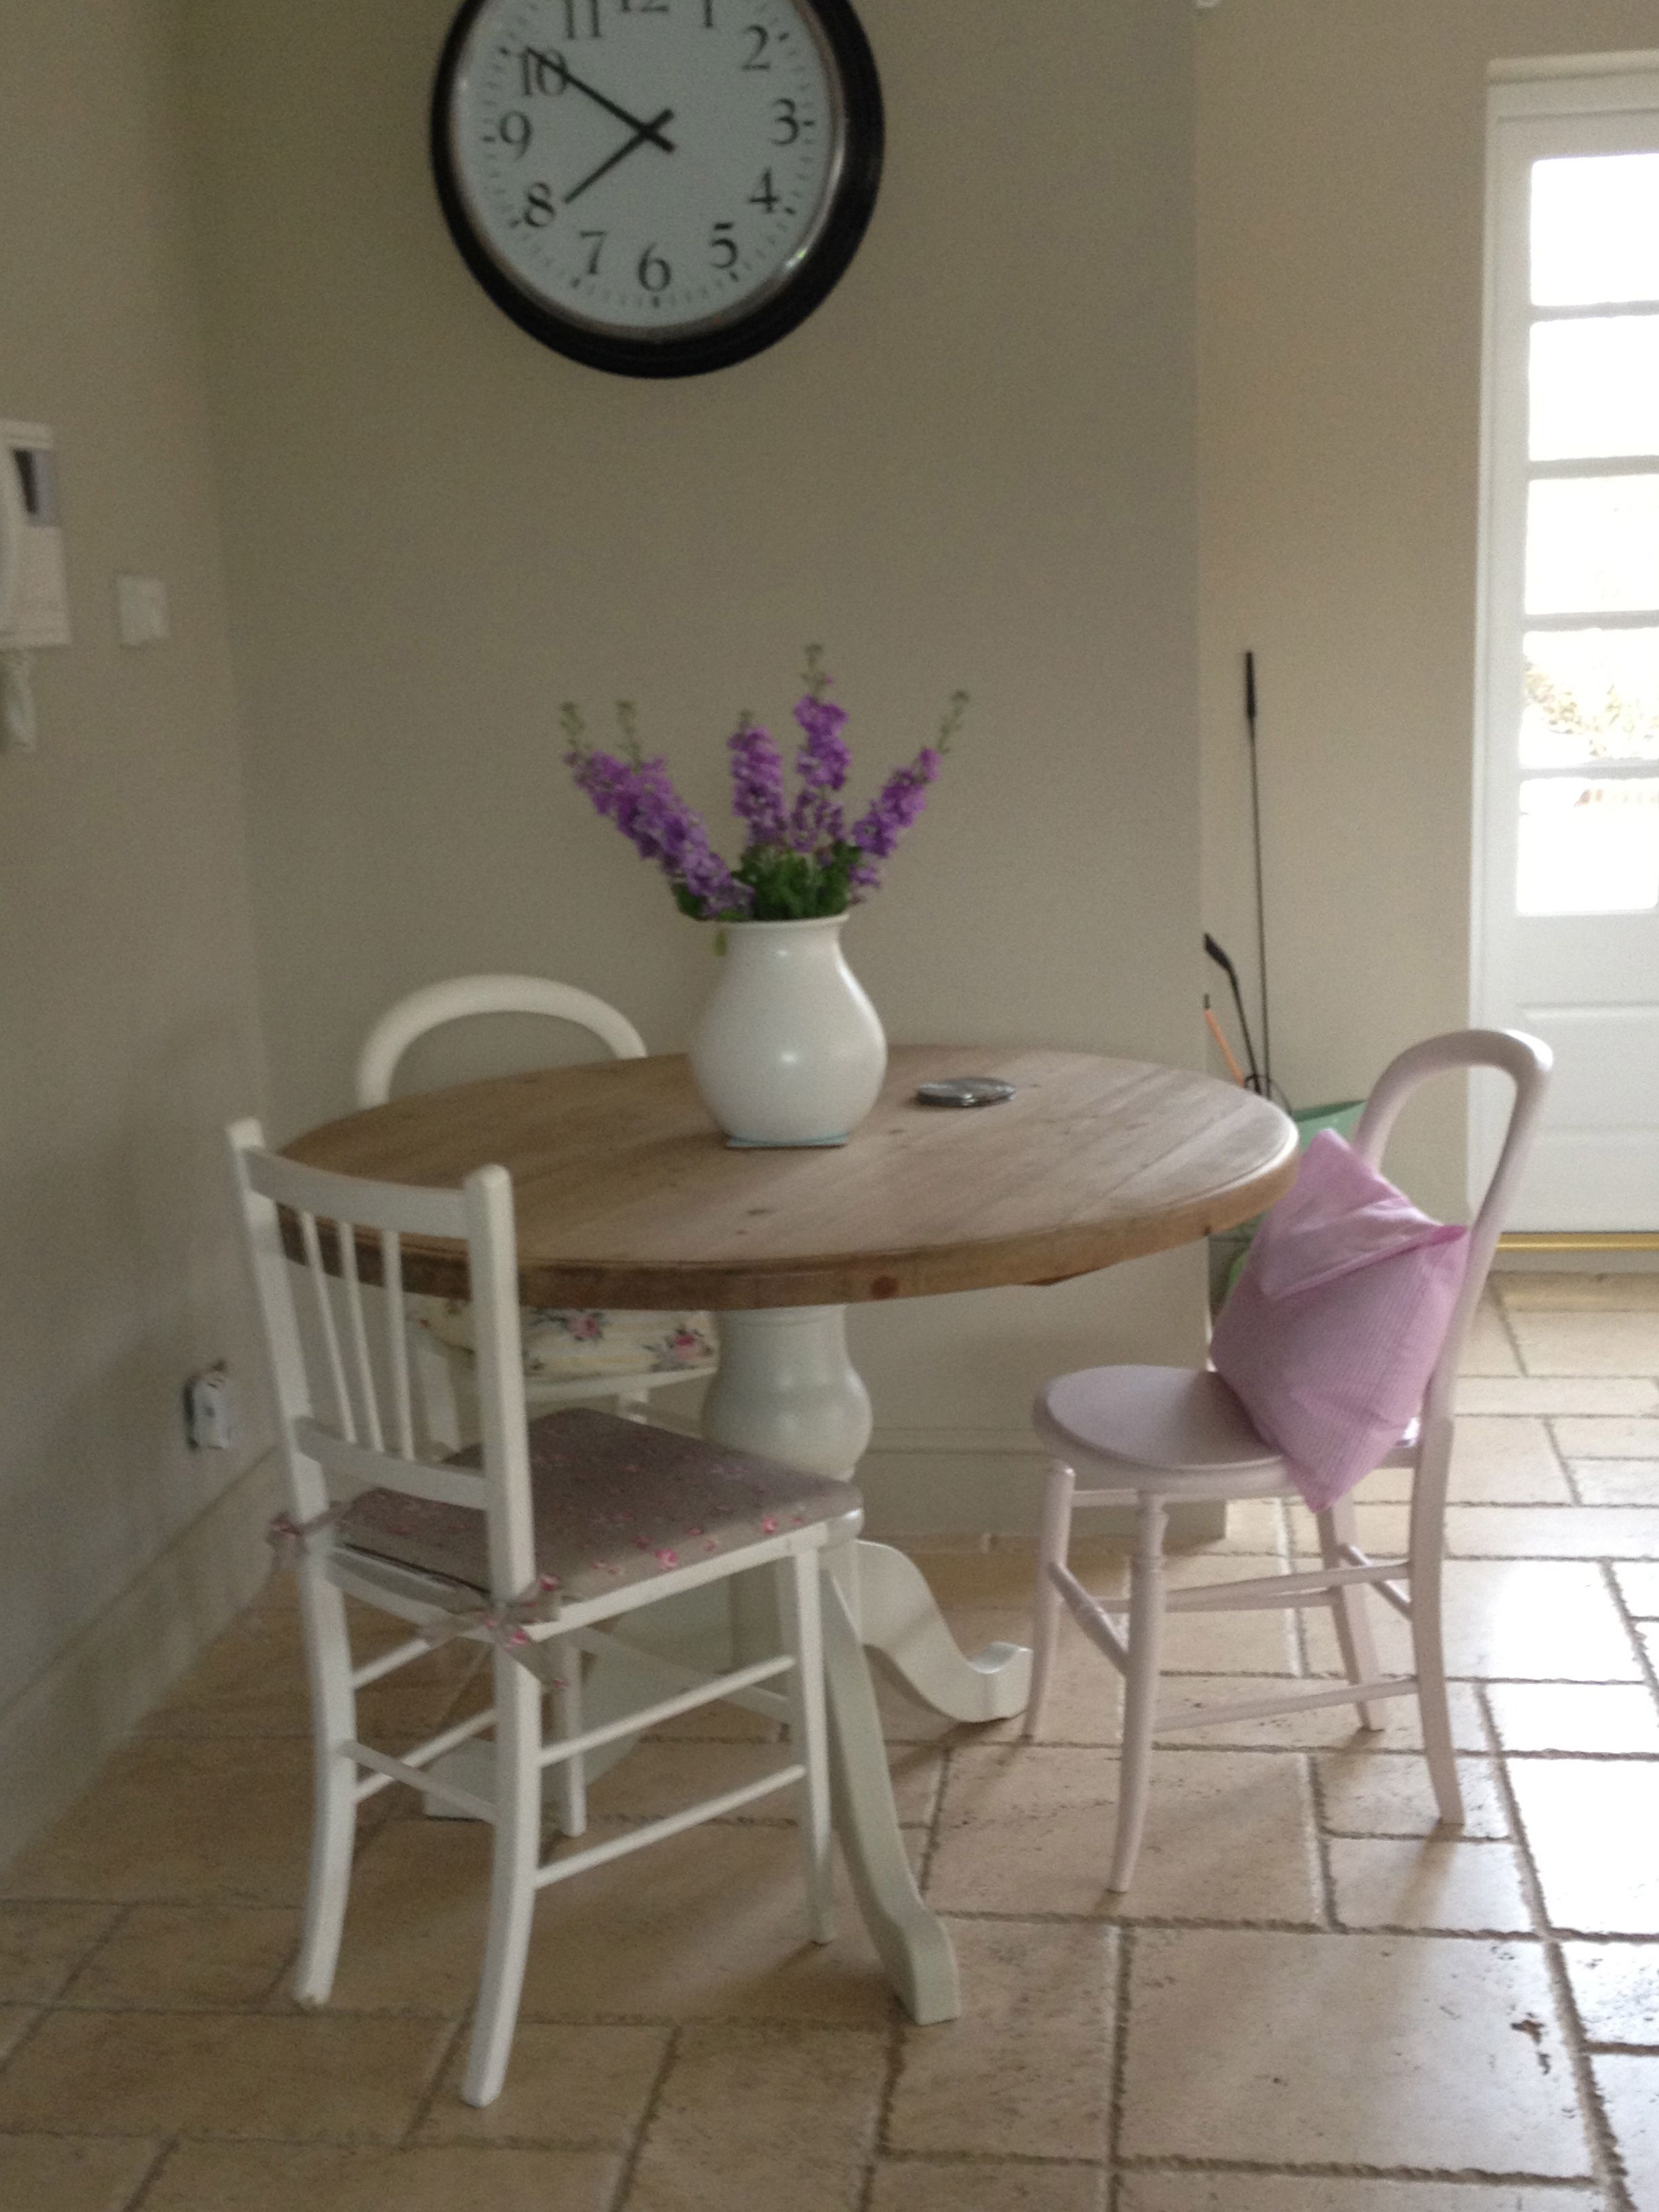 Round table painted in Slipper Satin by F B (With images